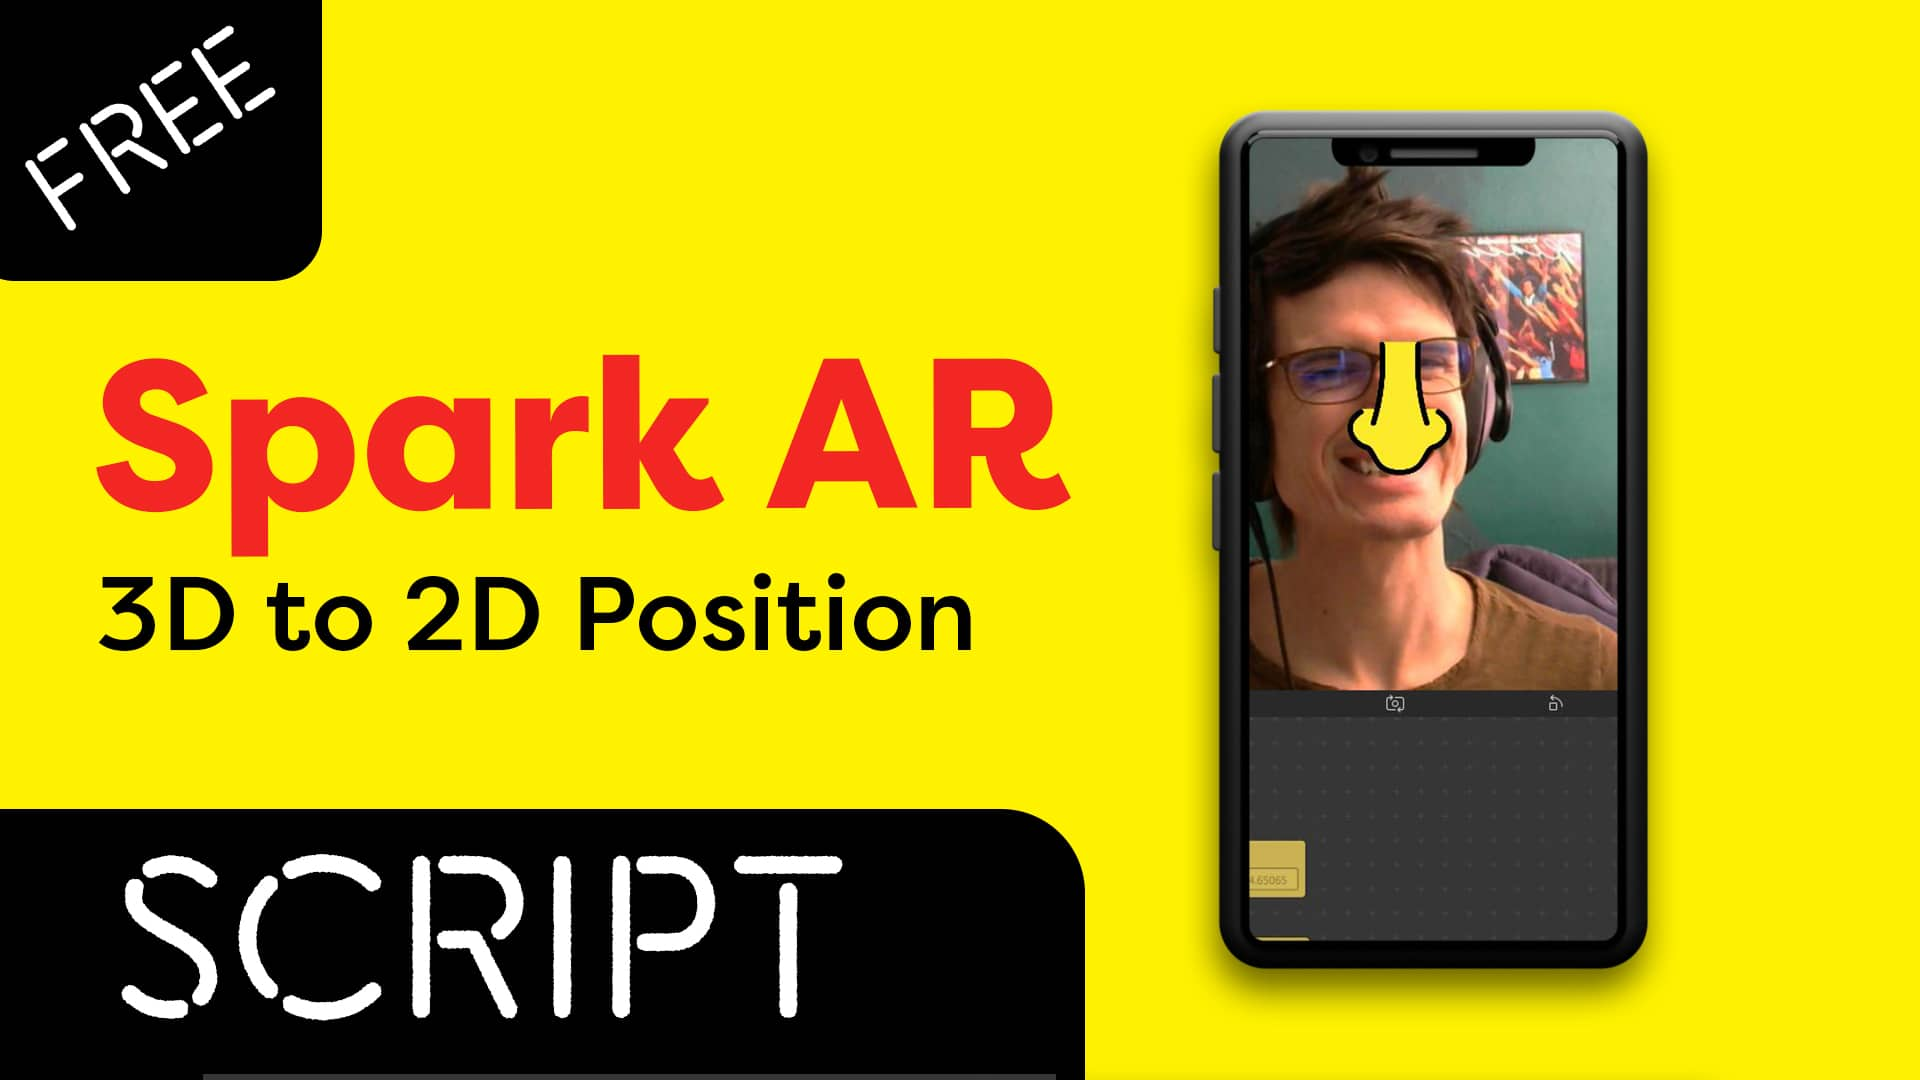 Spark AR 3D to 2D Position